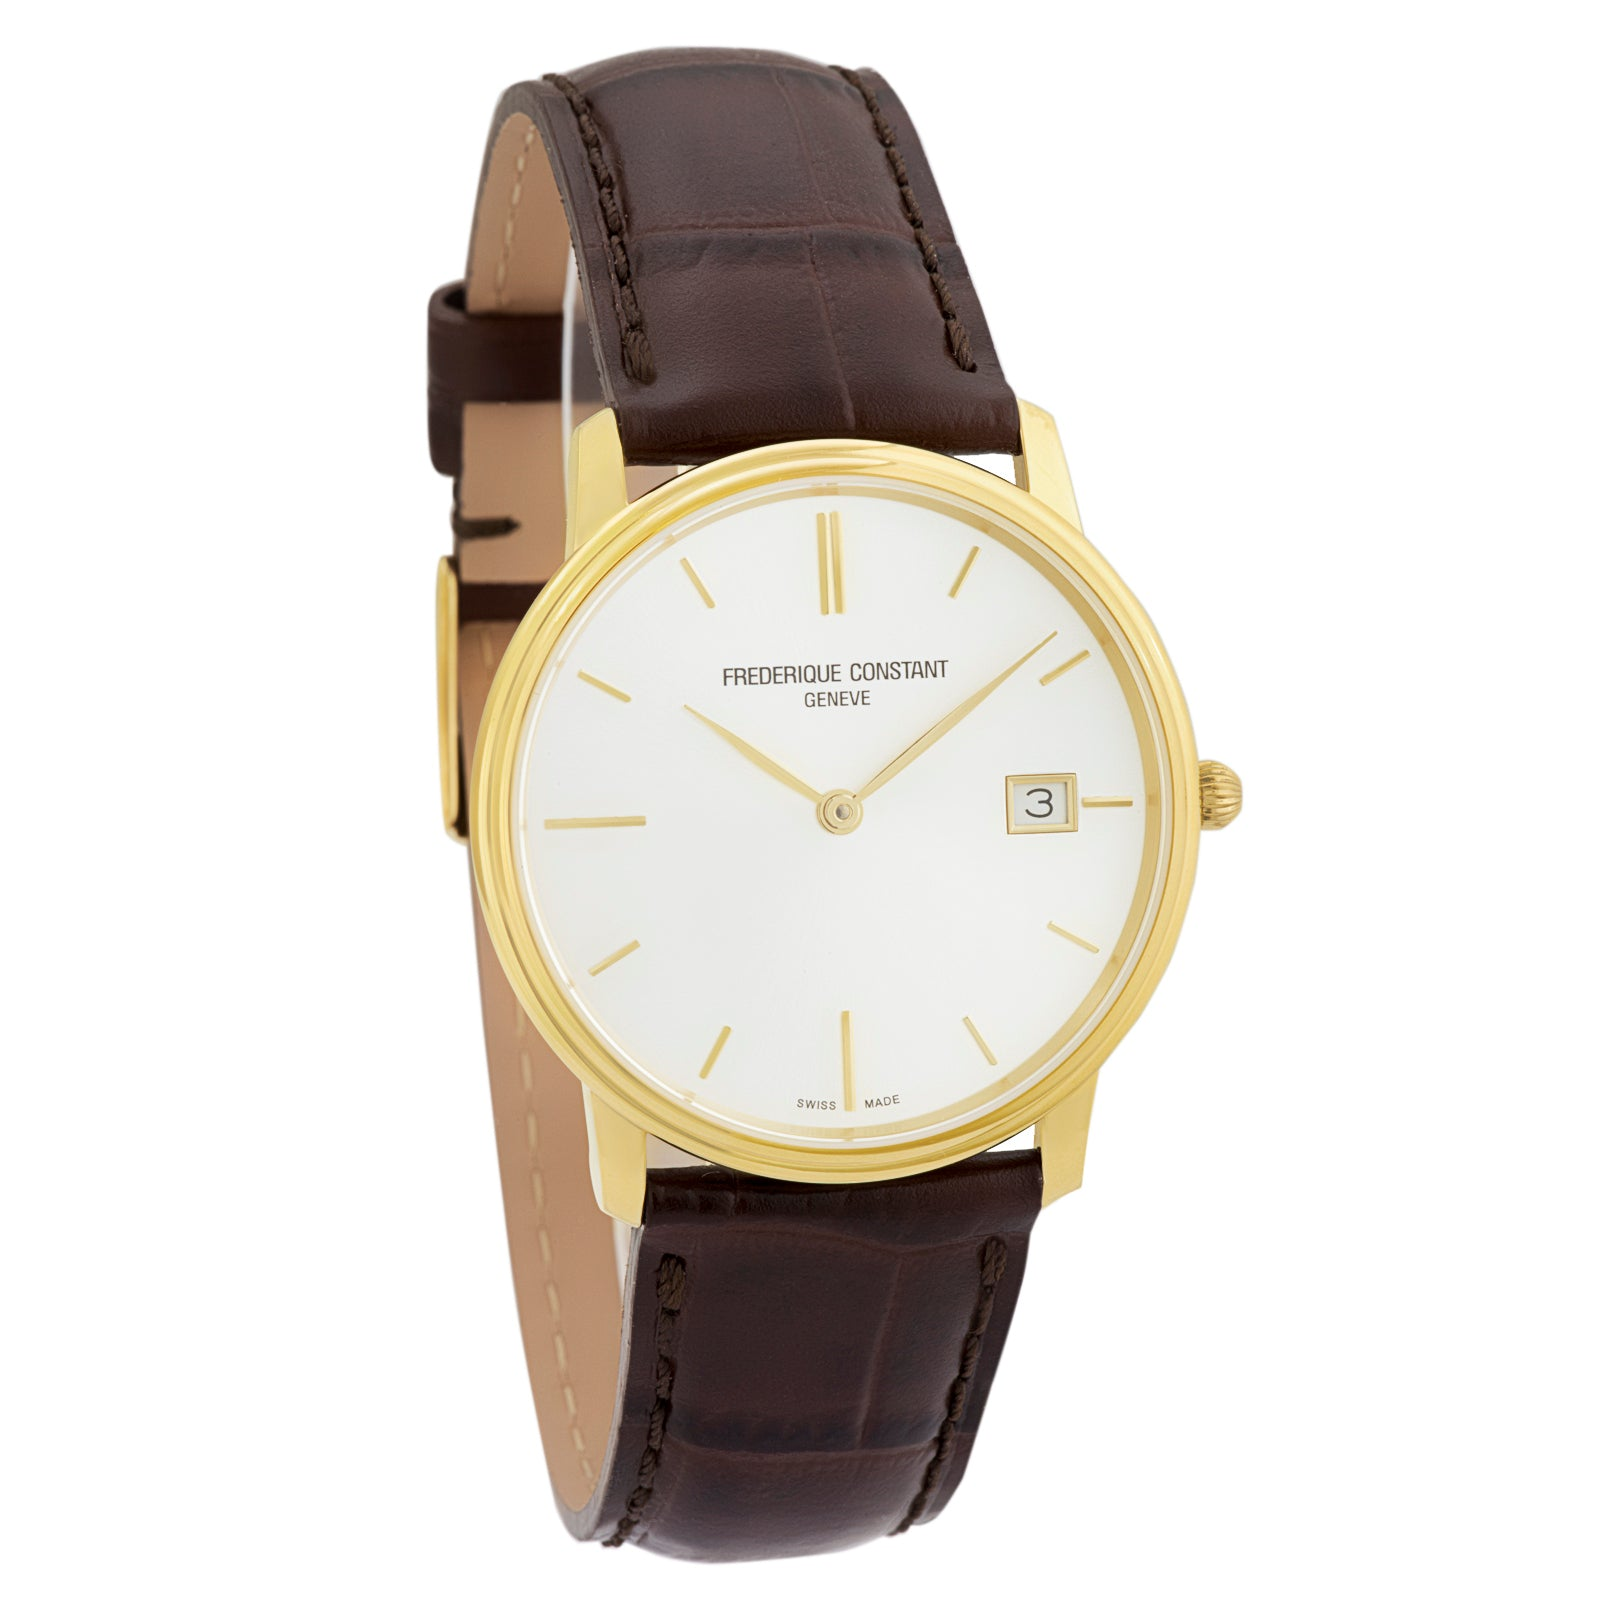 Slimline Classic Men's FC-220NV4S5 Swiss Made Watch-Luxury Watches | Mens And Ladies Luxury Watches | Upscale Time